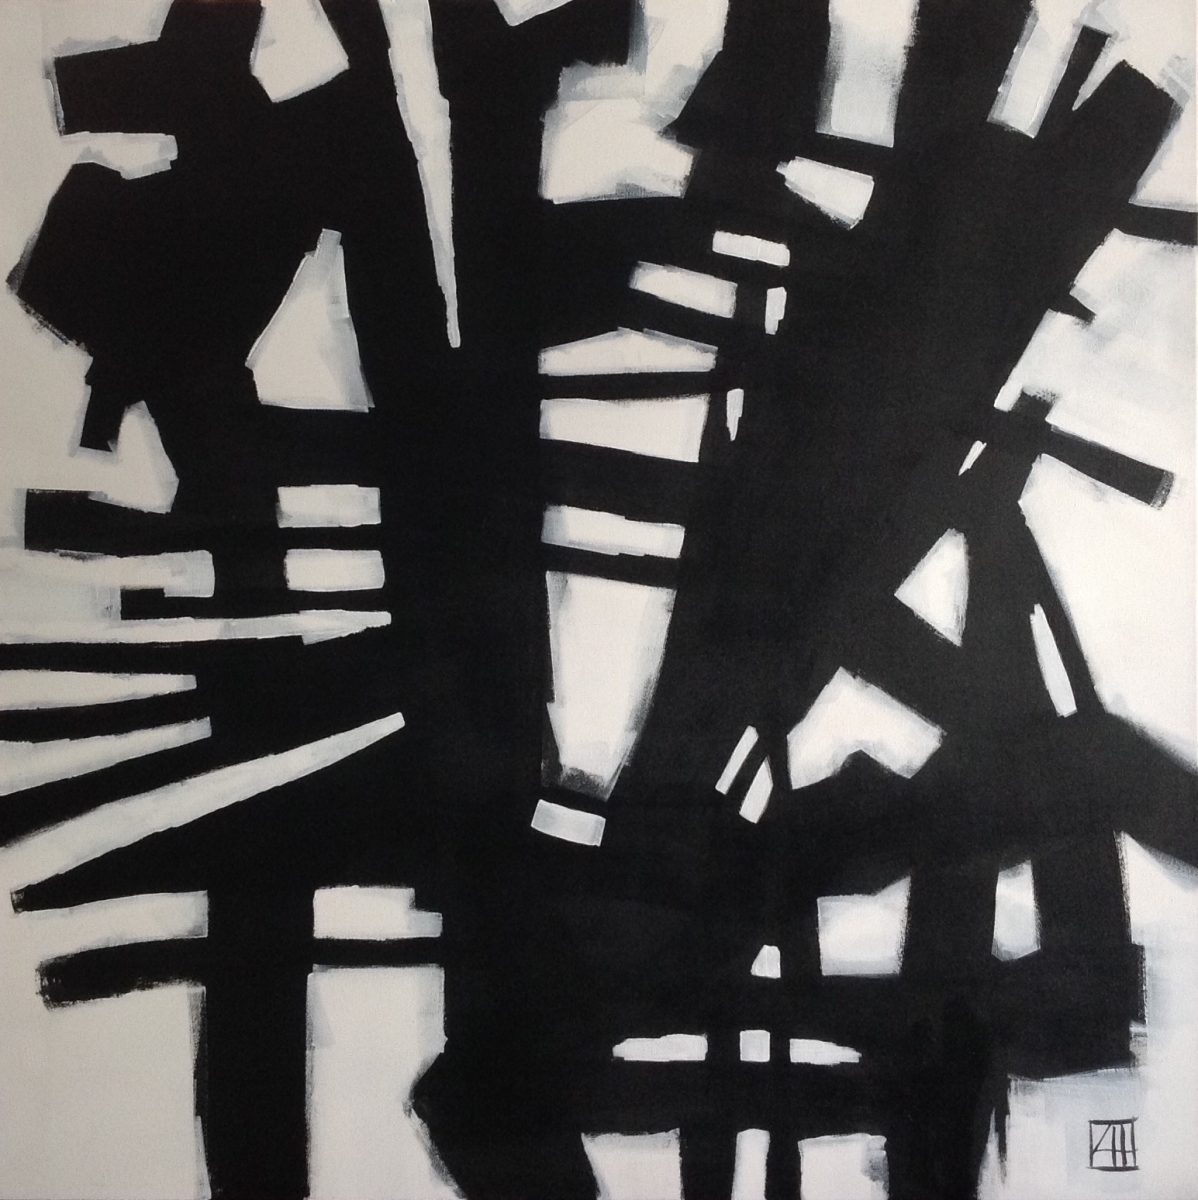 Louise Hennigs Black & White Abstract Paintings